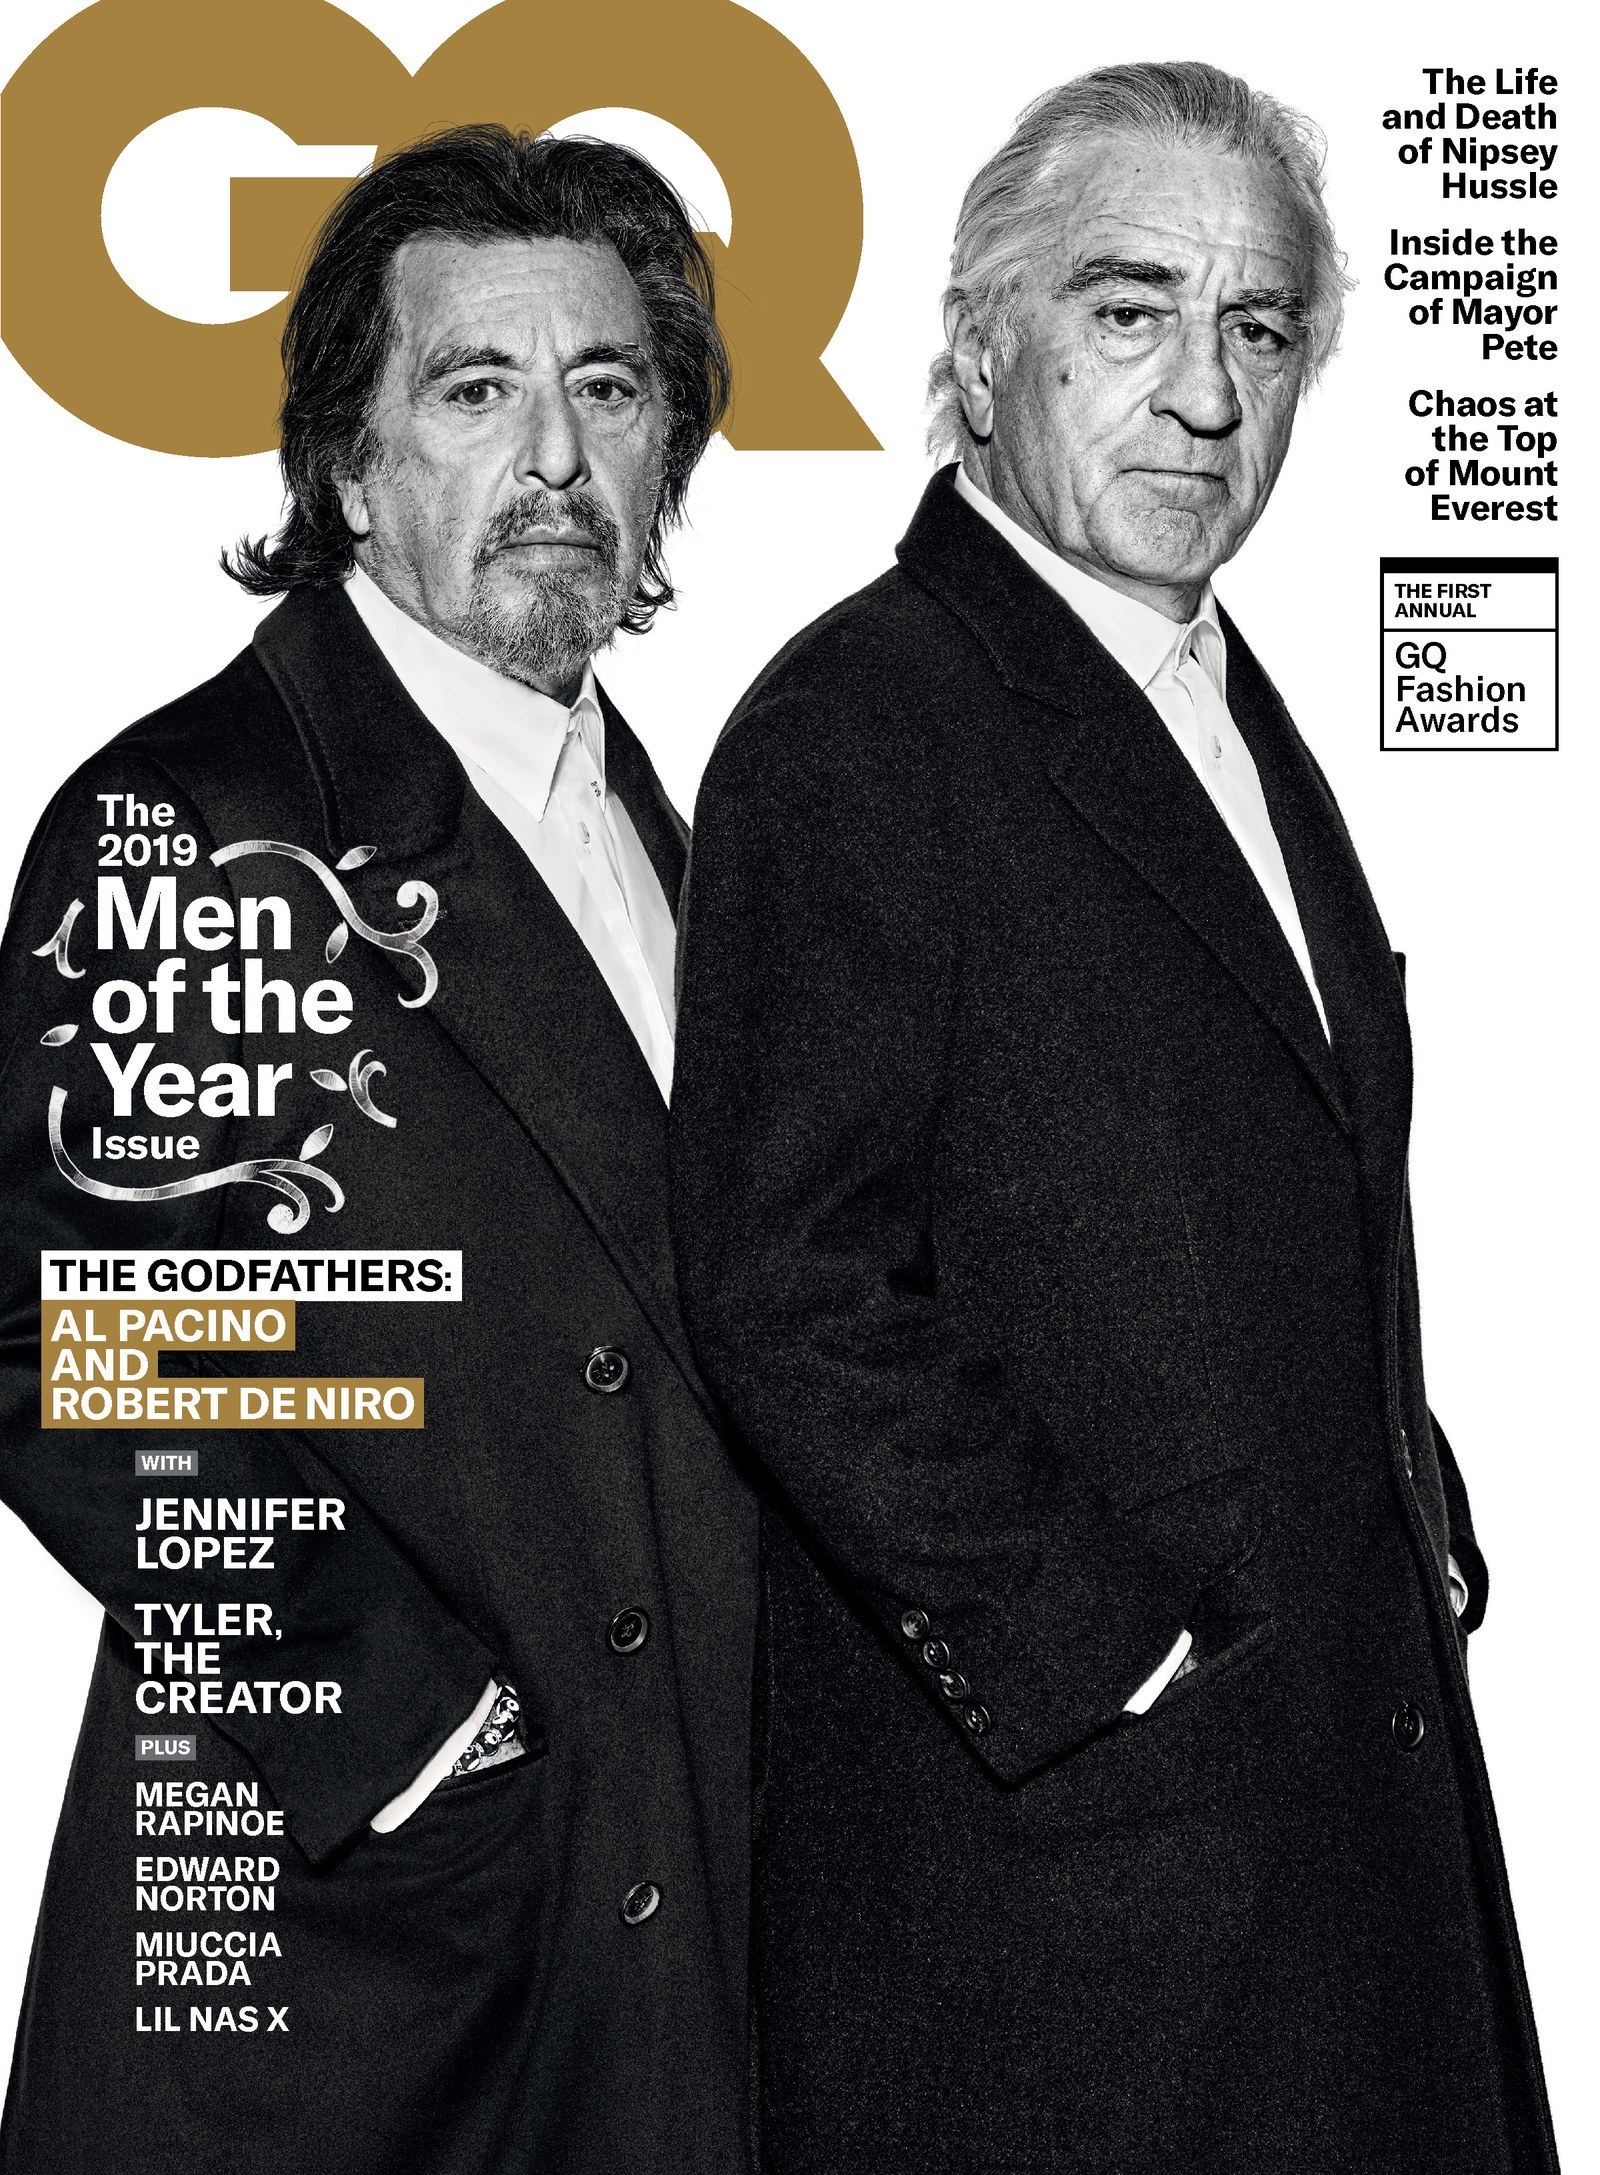 al-pacino-robert-de-niro-cover-gq-men-of-the-year-2019